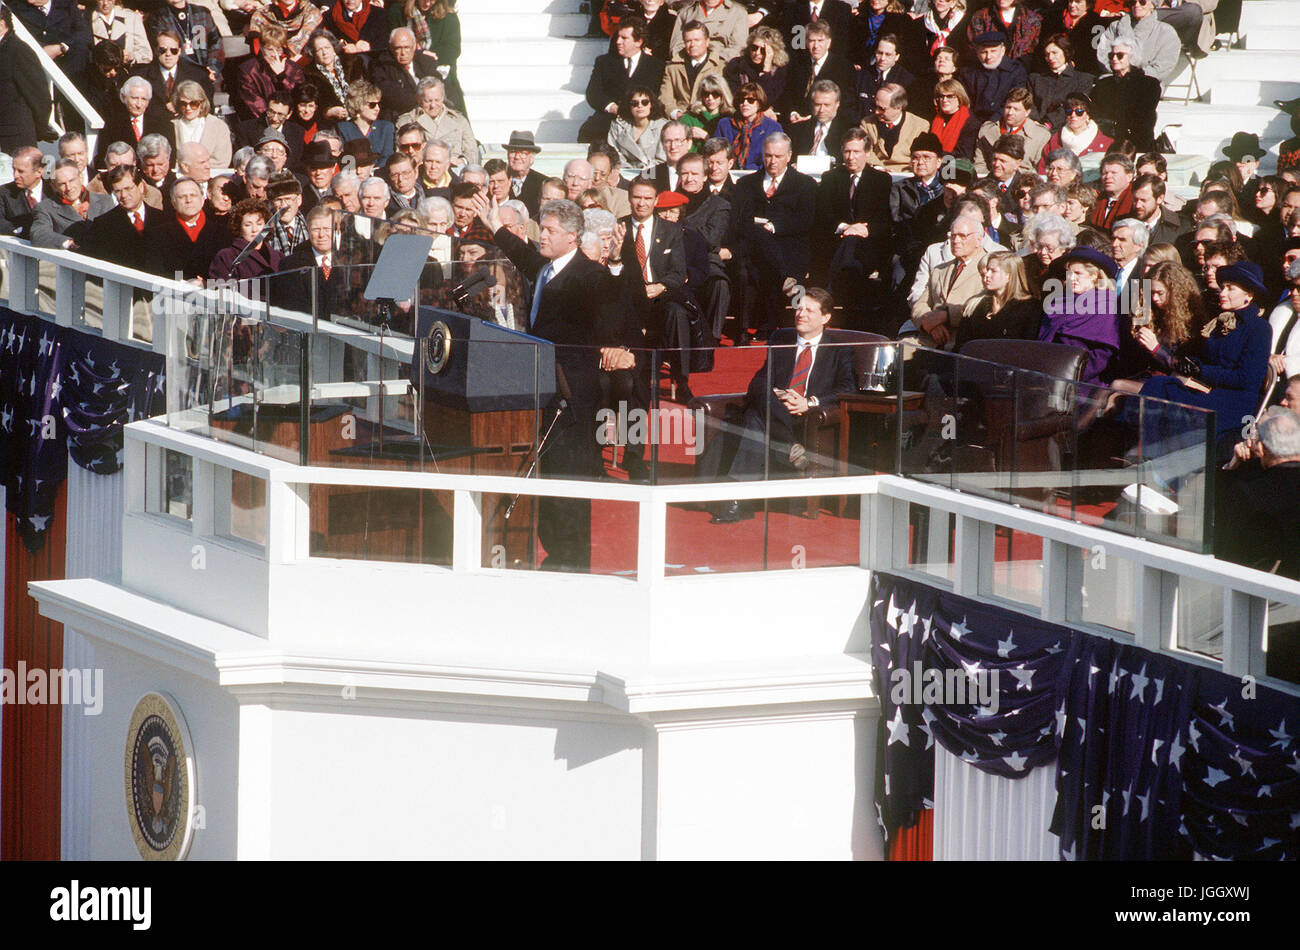 President Clinton delivers his Inaugural address moments after being sworn in as 42nd President of the United States - Stock Image